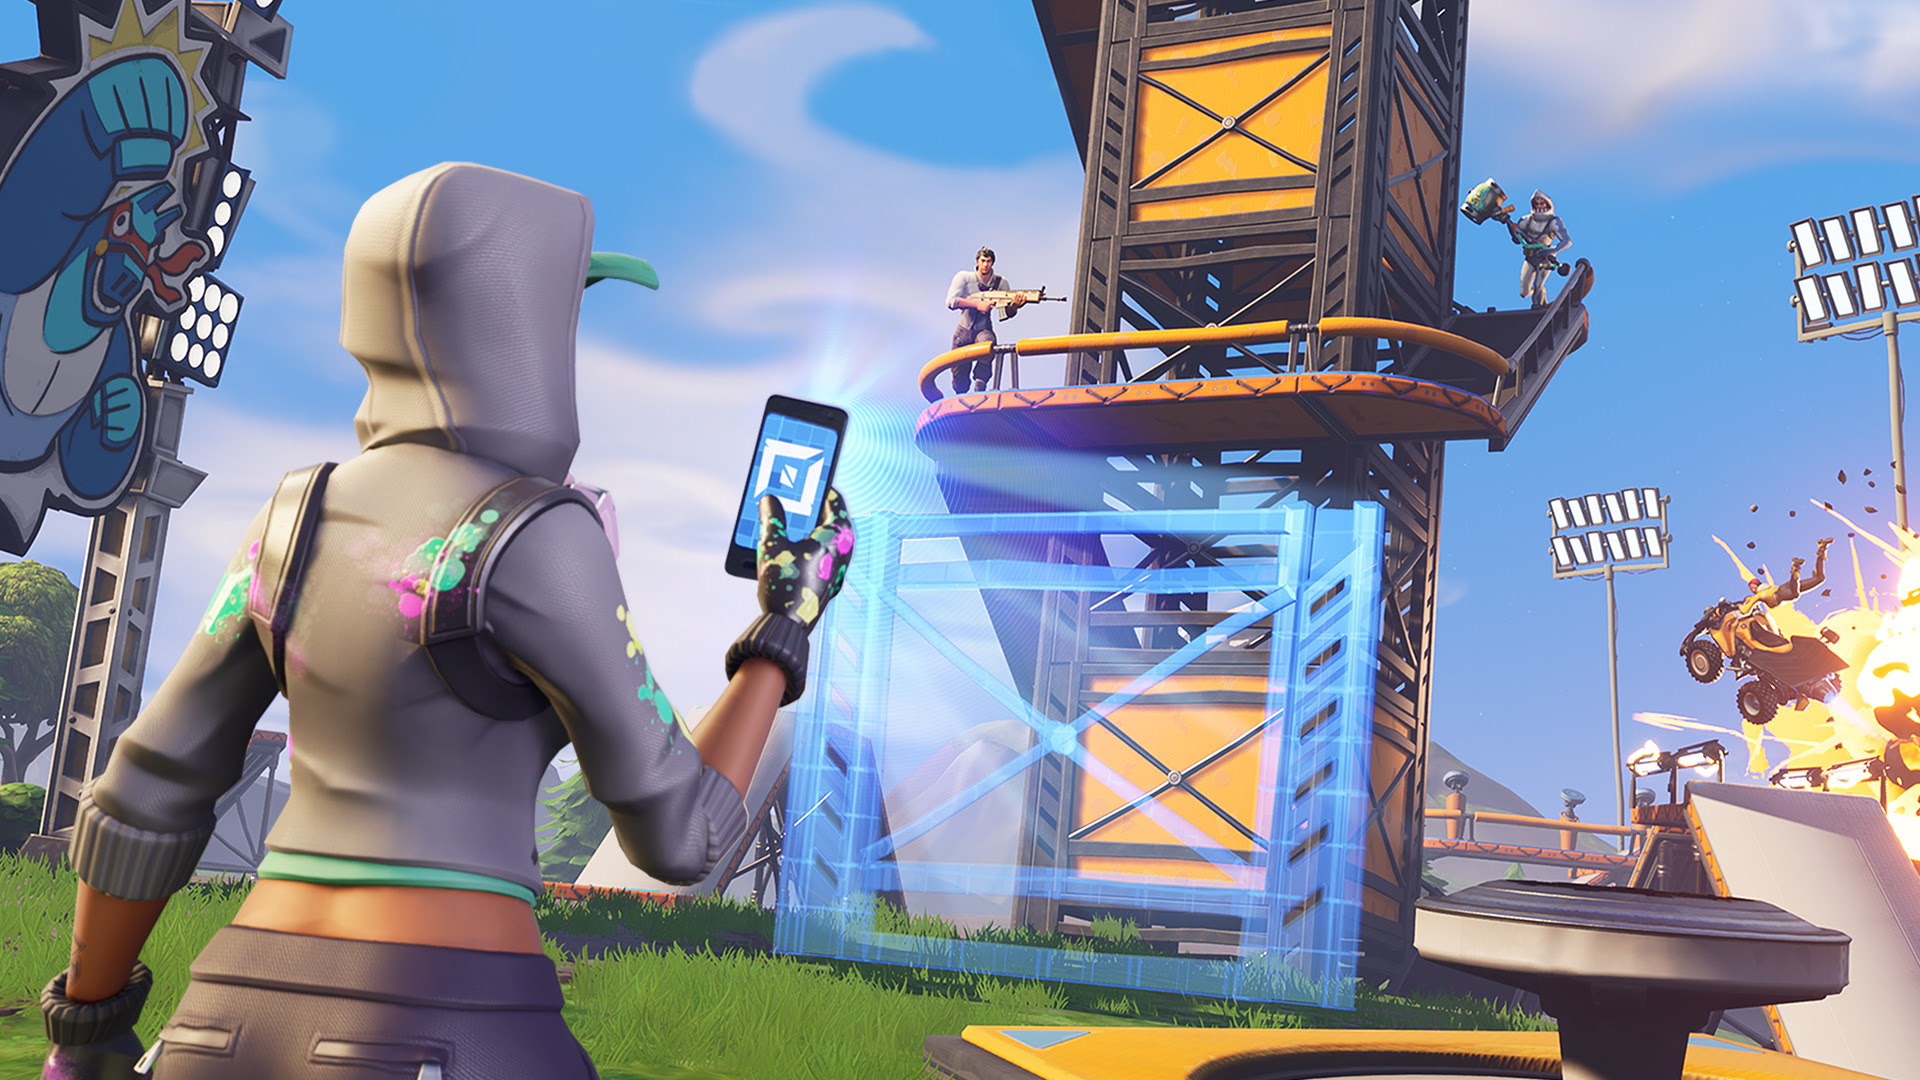 Fortnite temporarily loses improvements from latest patch, and Playground has been re-enabled